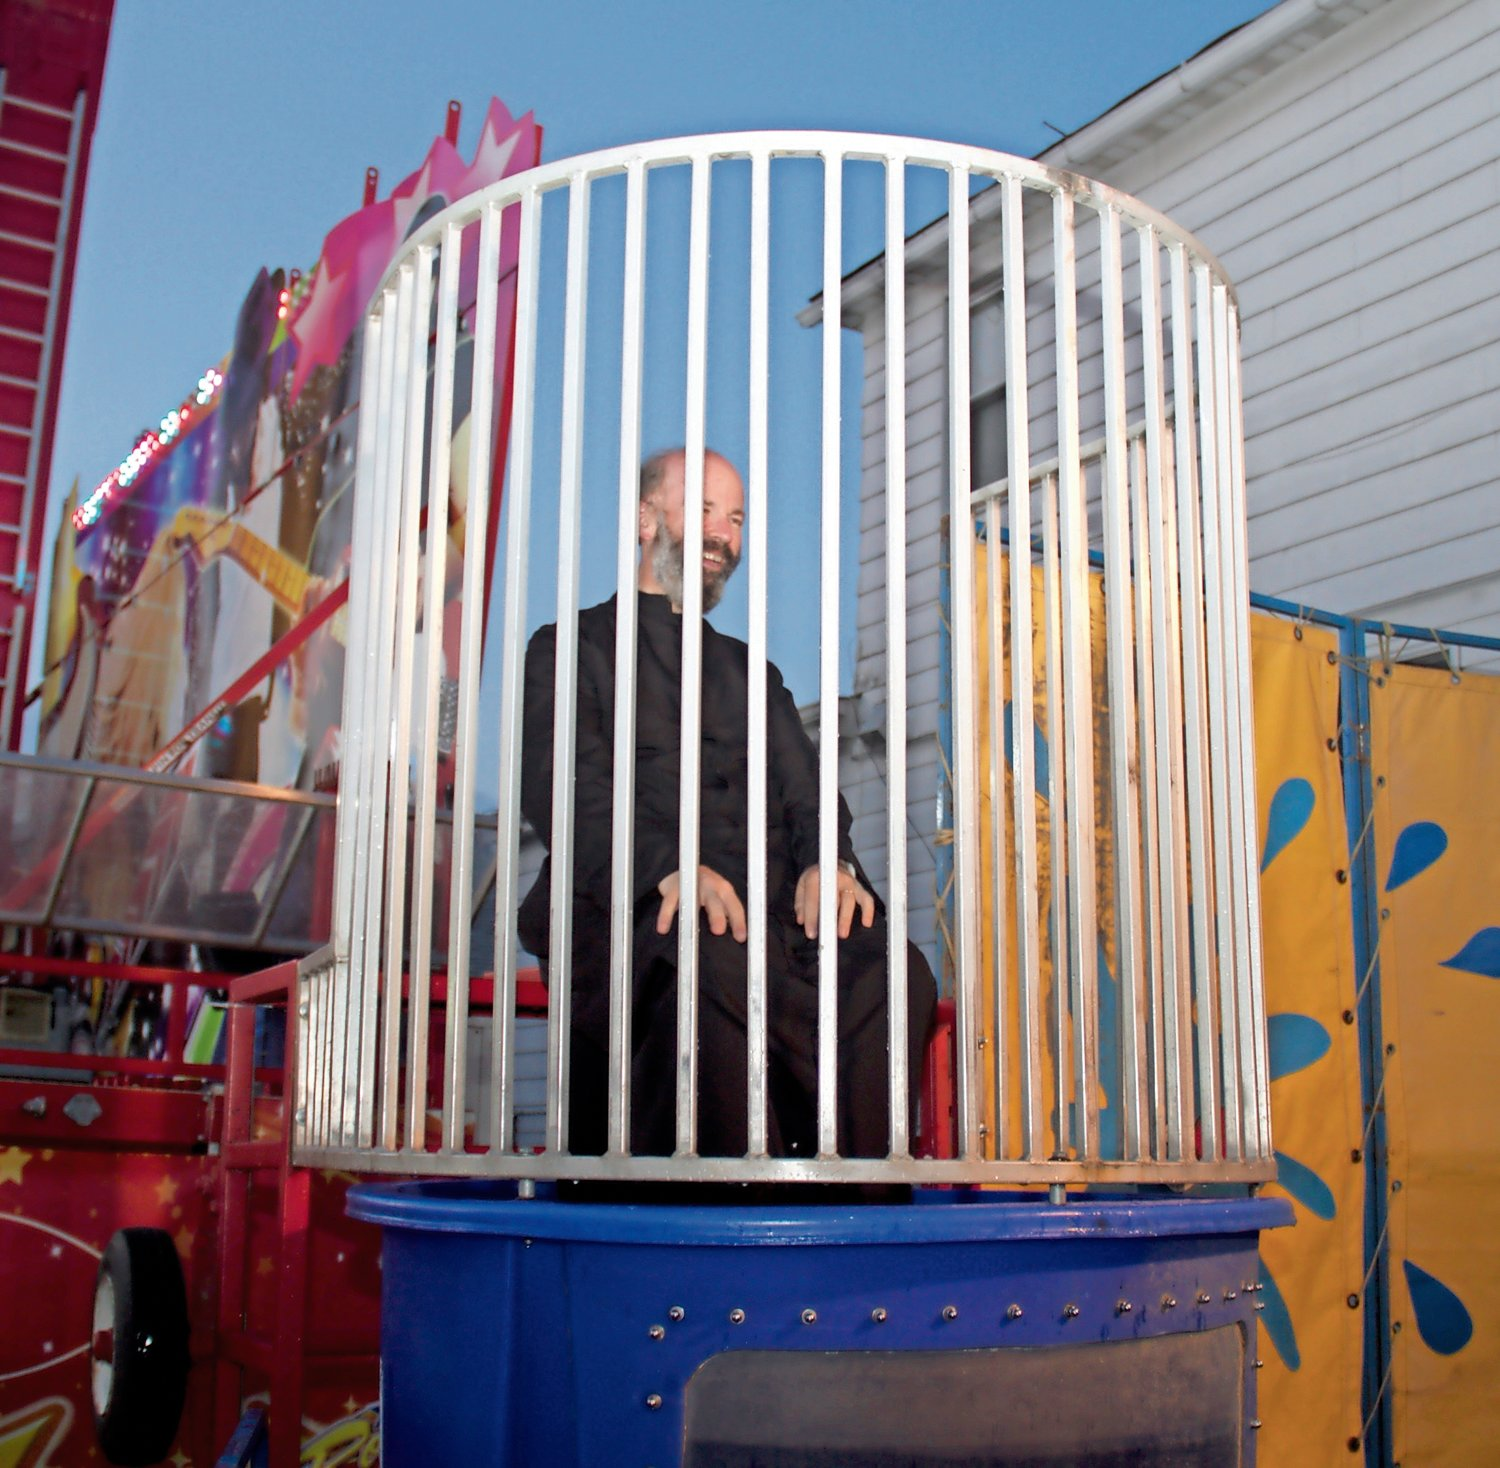 Father Daniel of St. Rocco's Church challenged feast-goers to drop him into the dunk tank.